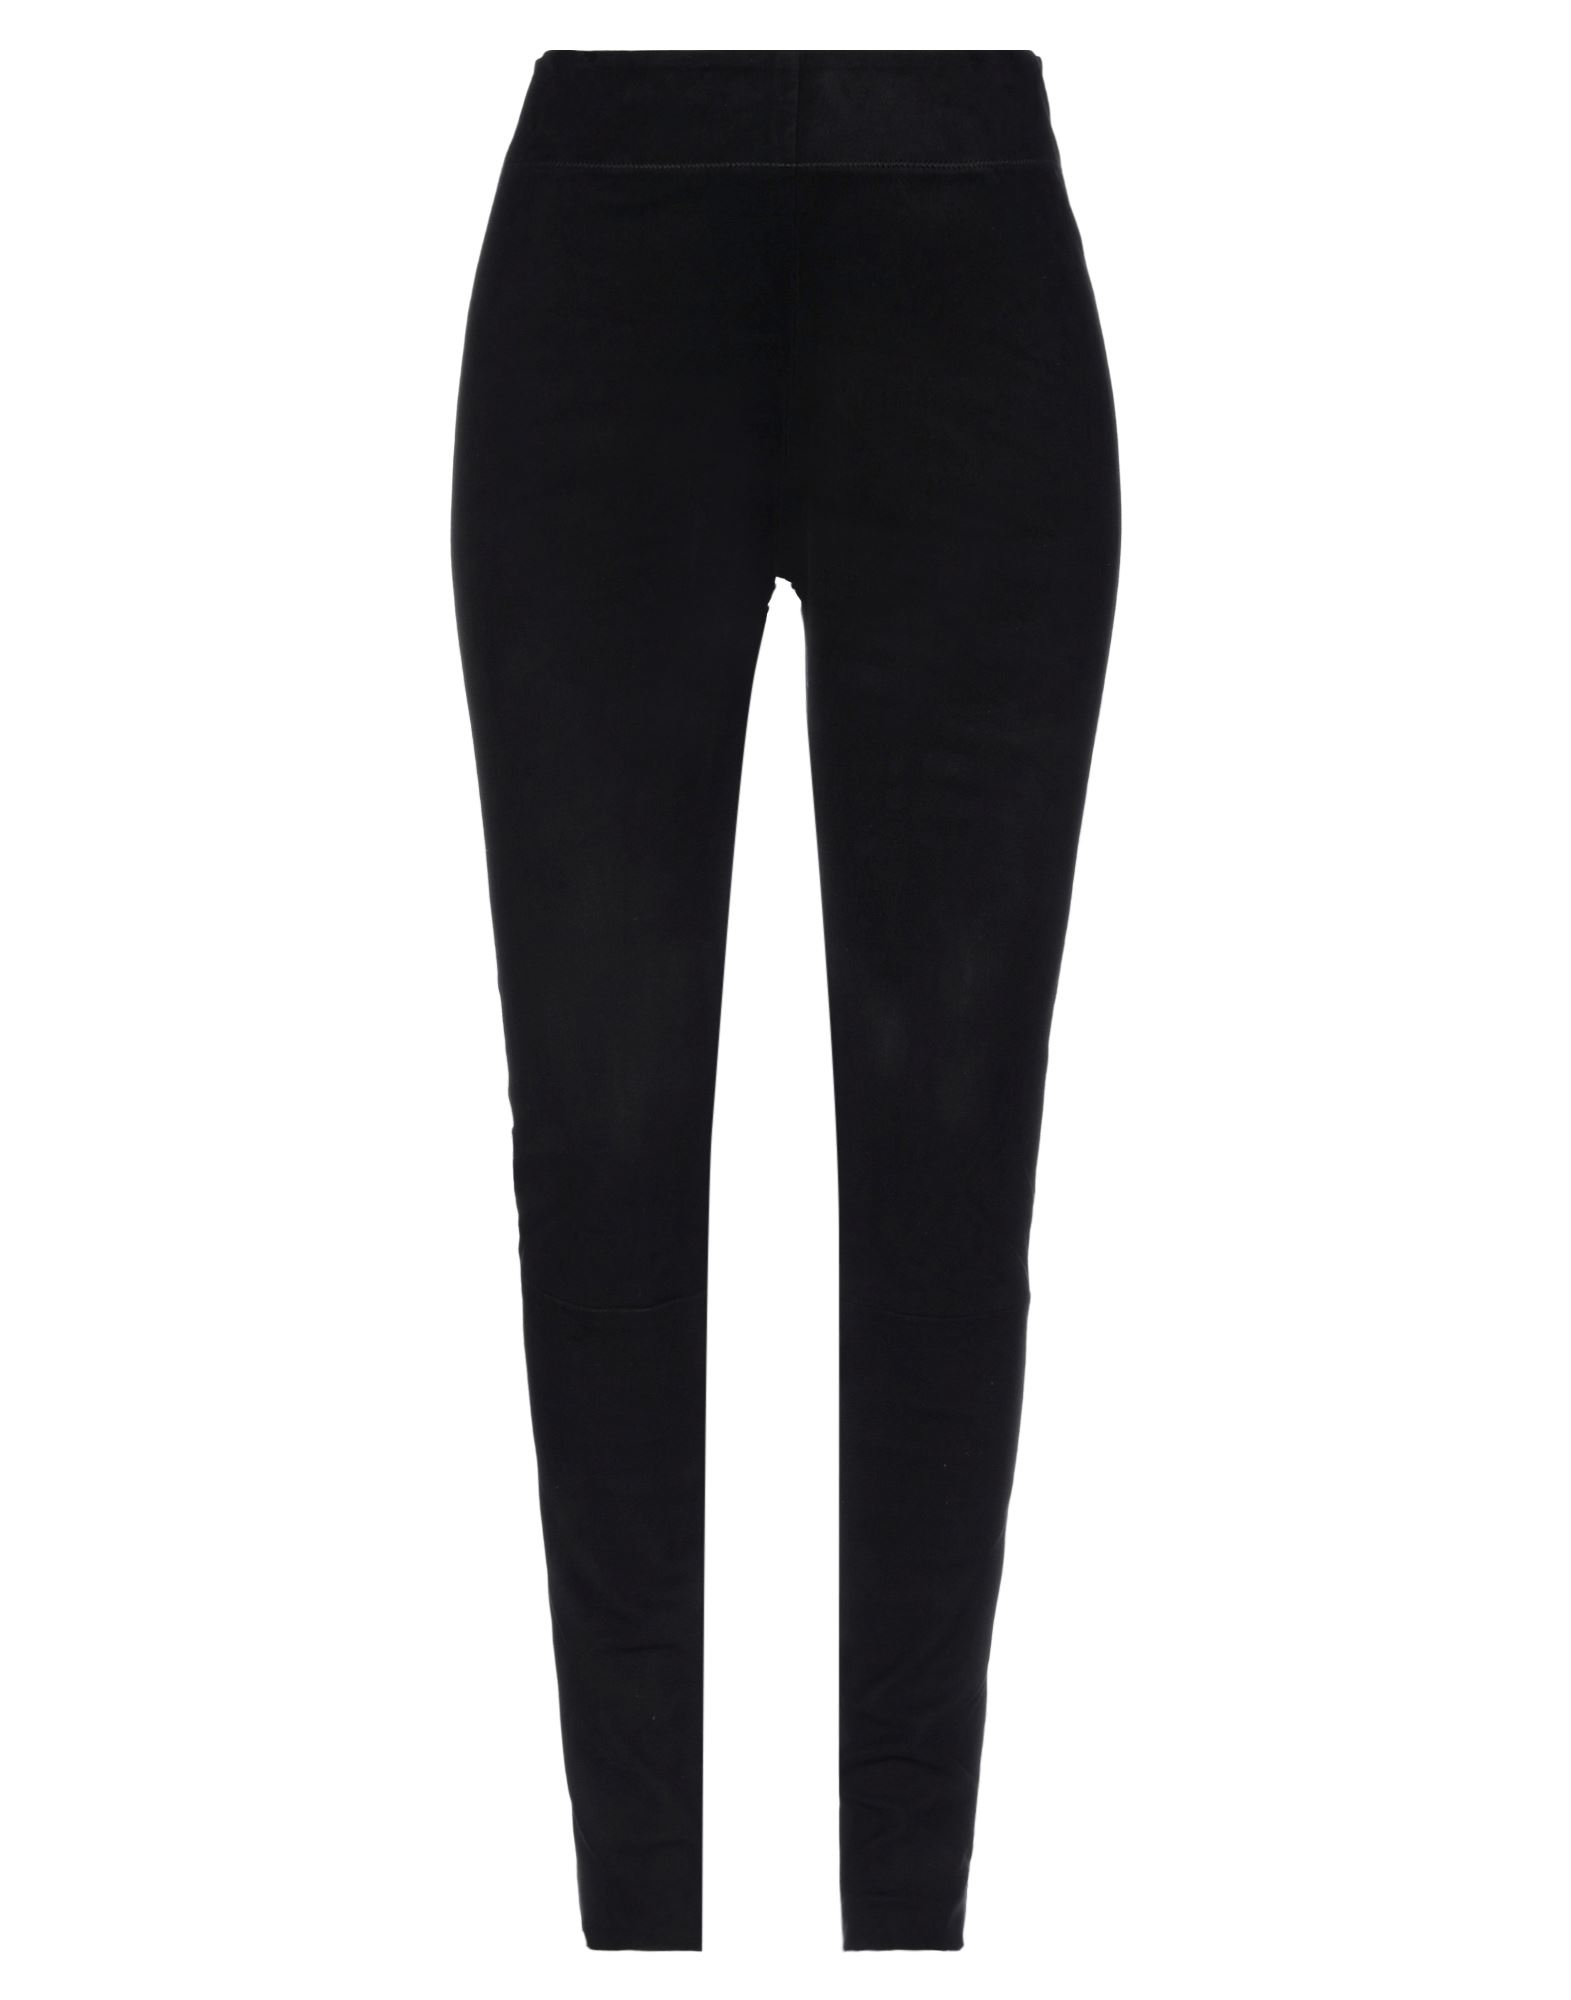 JIL SANDER Leggings. leather, basic solid color, suede effect, no appliqués, high waisted, slim fit, elasticized waist, no pockets, contains non-textile parts of animal origin, large sized. 100% Lambskin